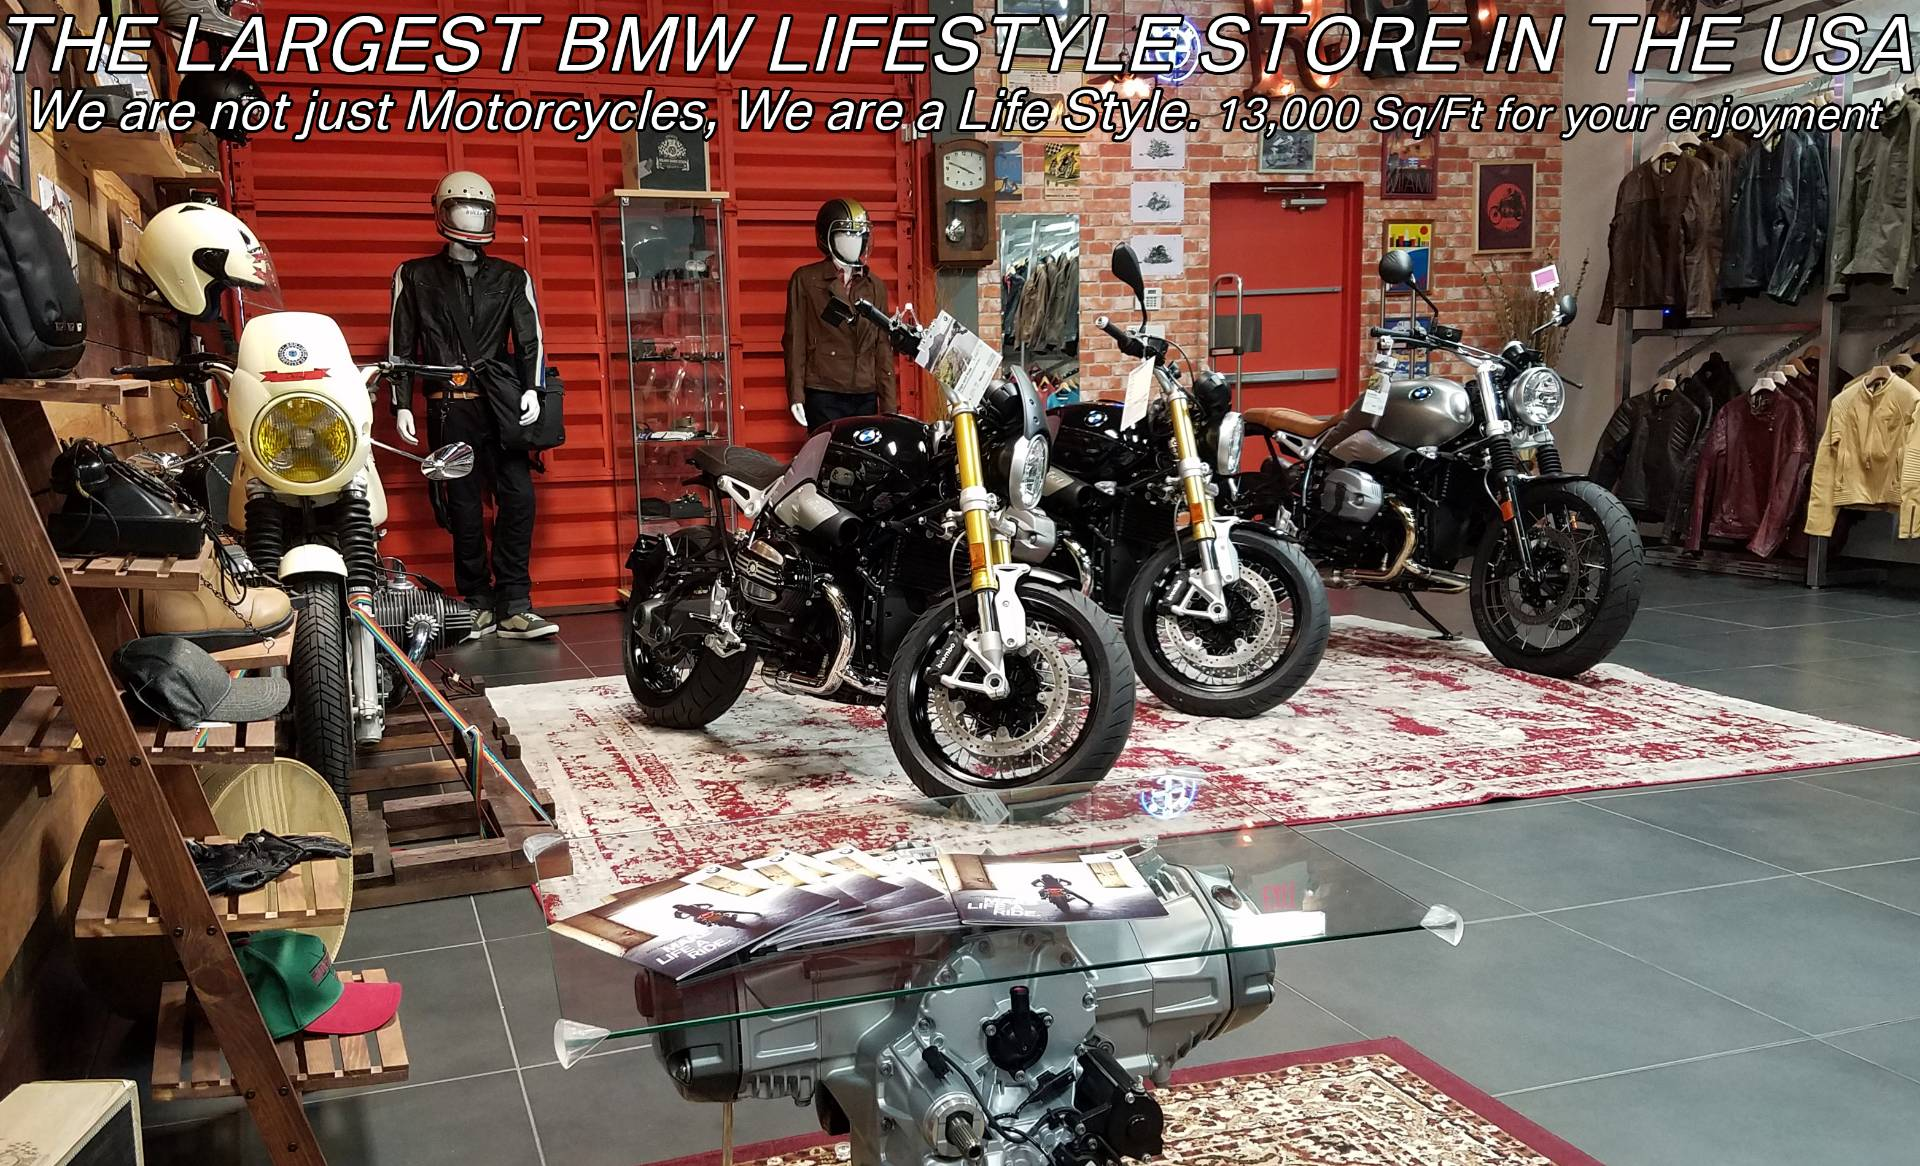 New 2019 BMW R 1250 GS for sale, New BMW R 1250GS, BMW R1250GS for sale, 1250GS, R1250GS, BMW Motorcycles of Miami, Motorcycles of Miami. Motorcycles Miami - Photo 40